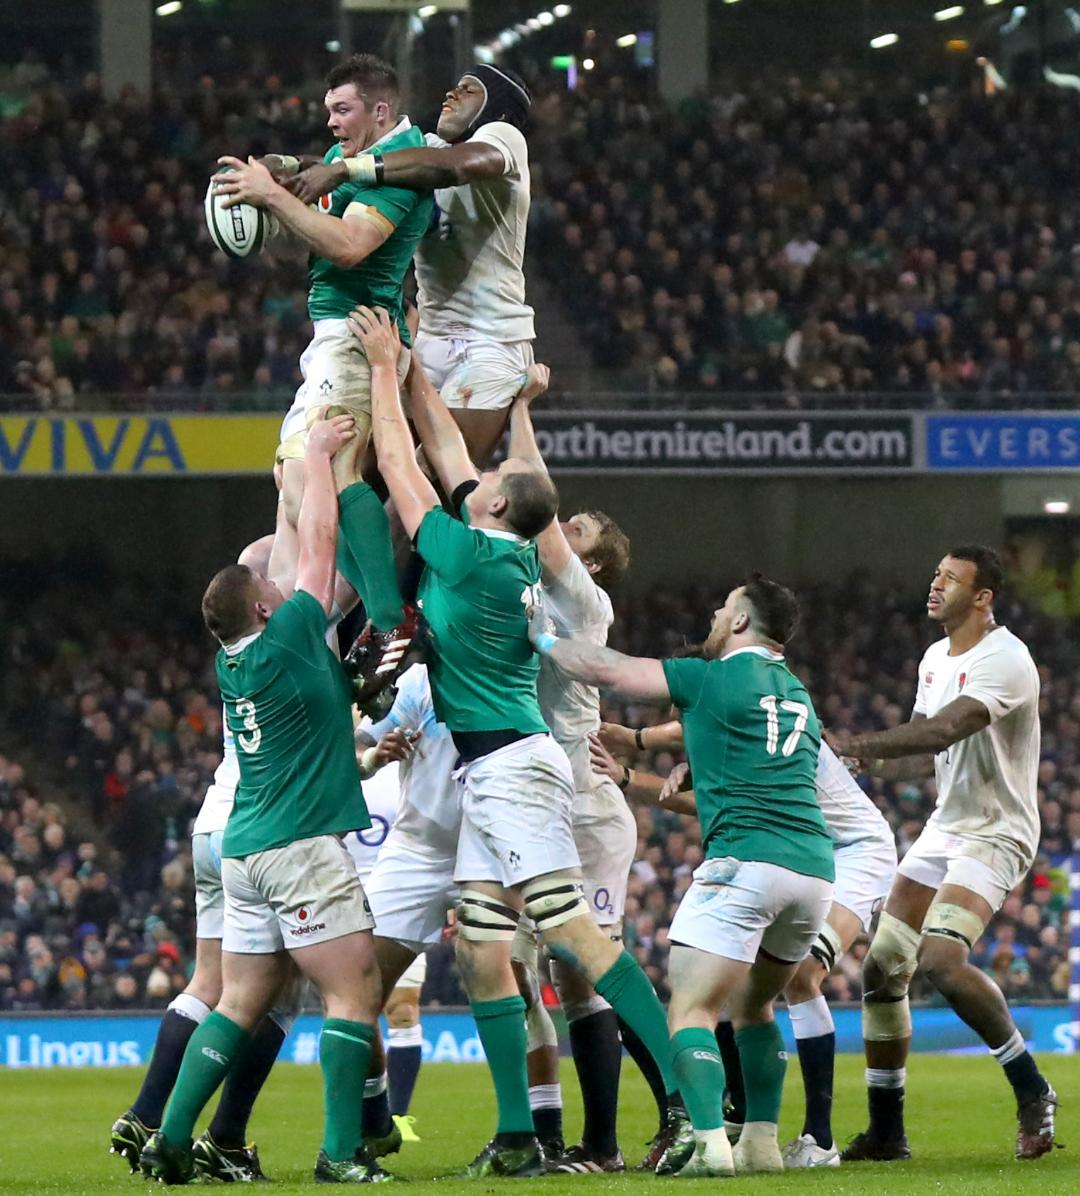 England v Ireland - Match Preview Header Photo